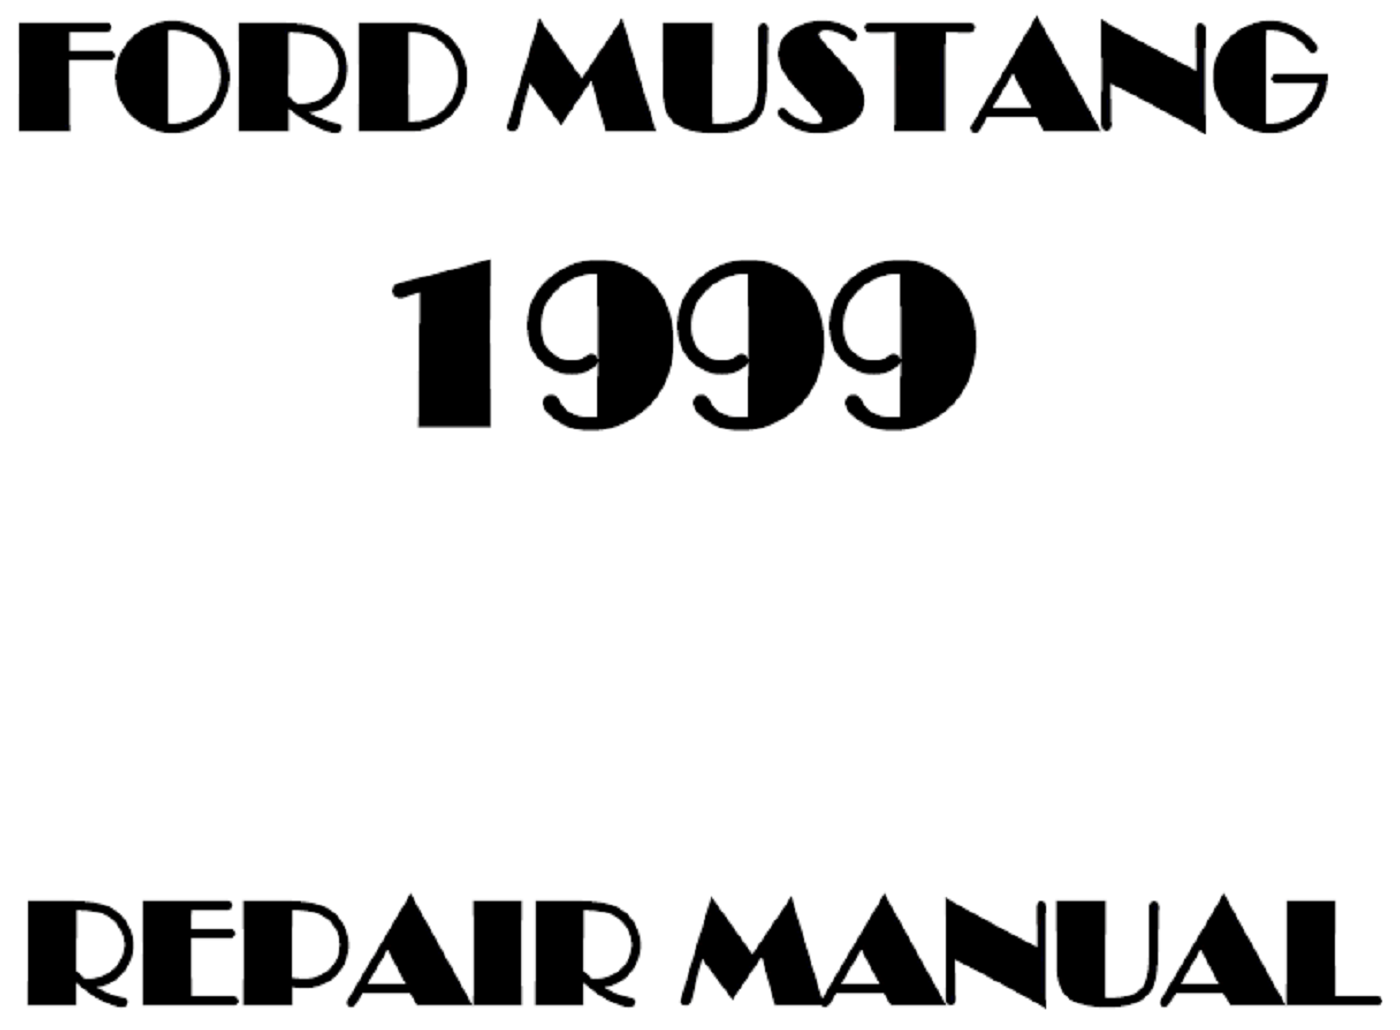 1999 Ford Mustang repair manual